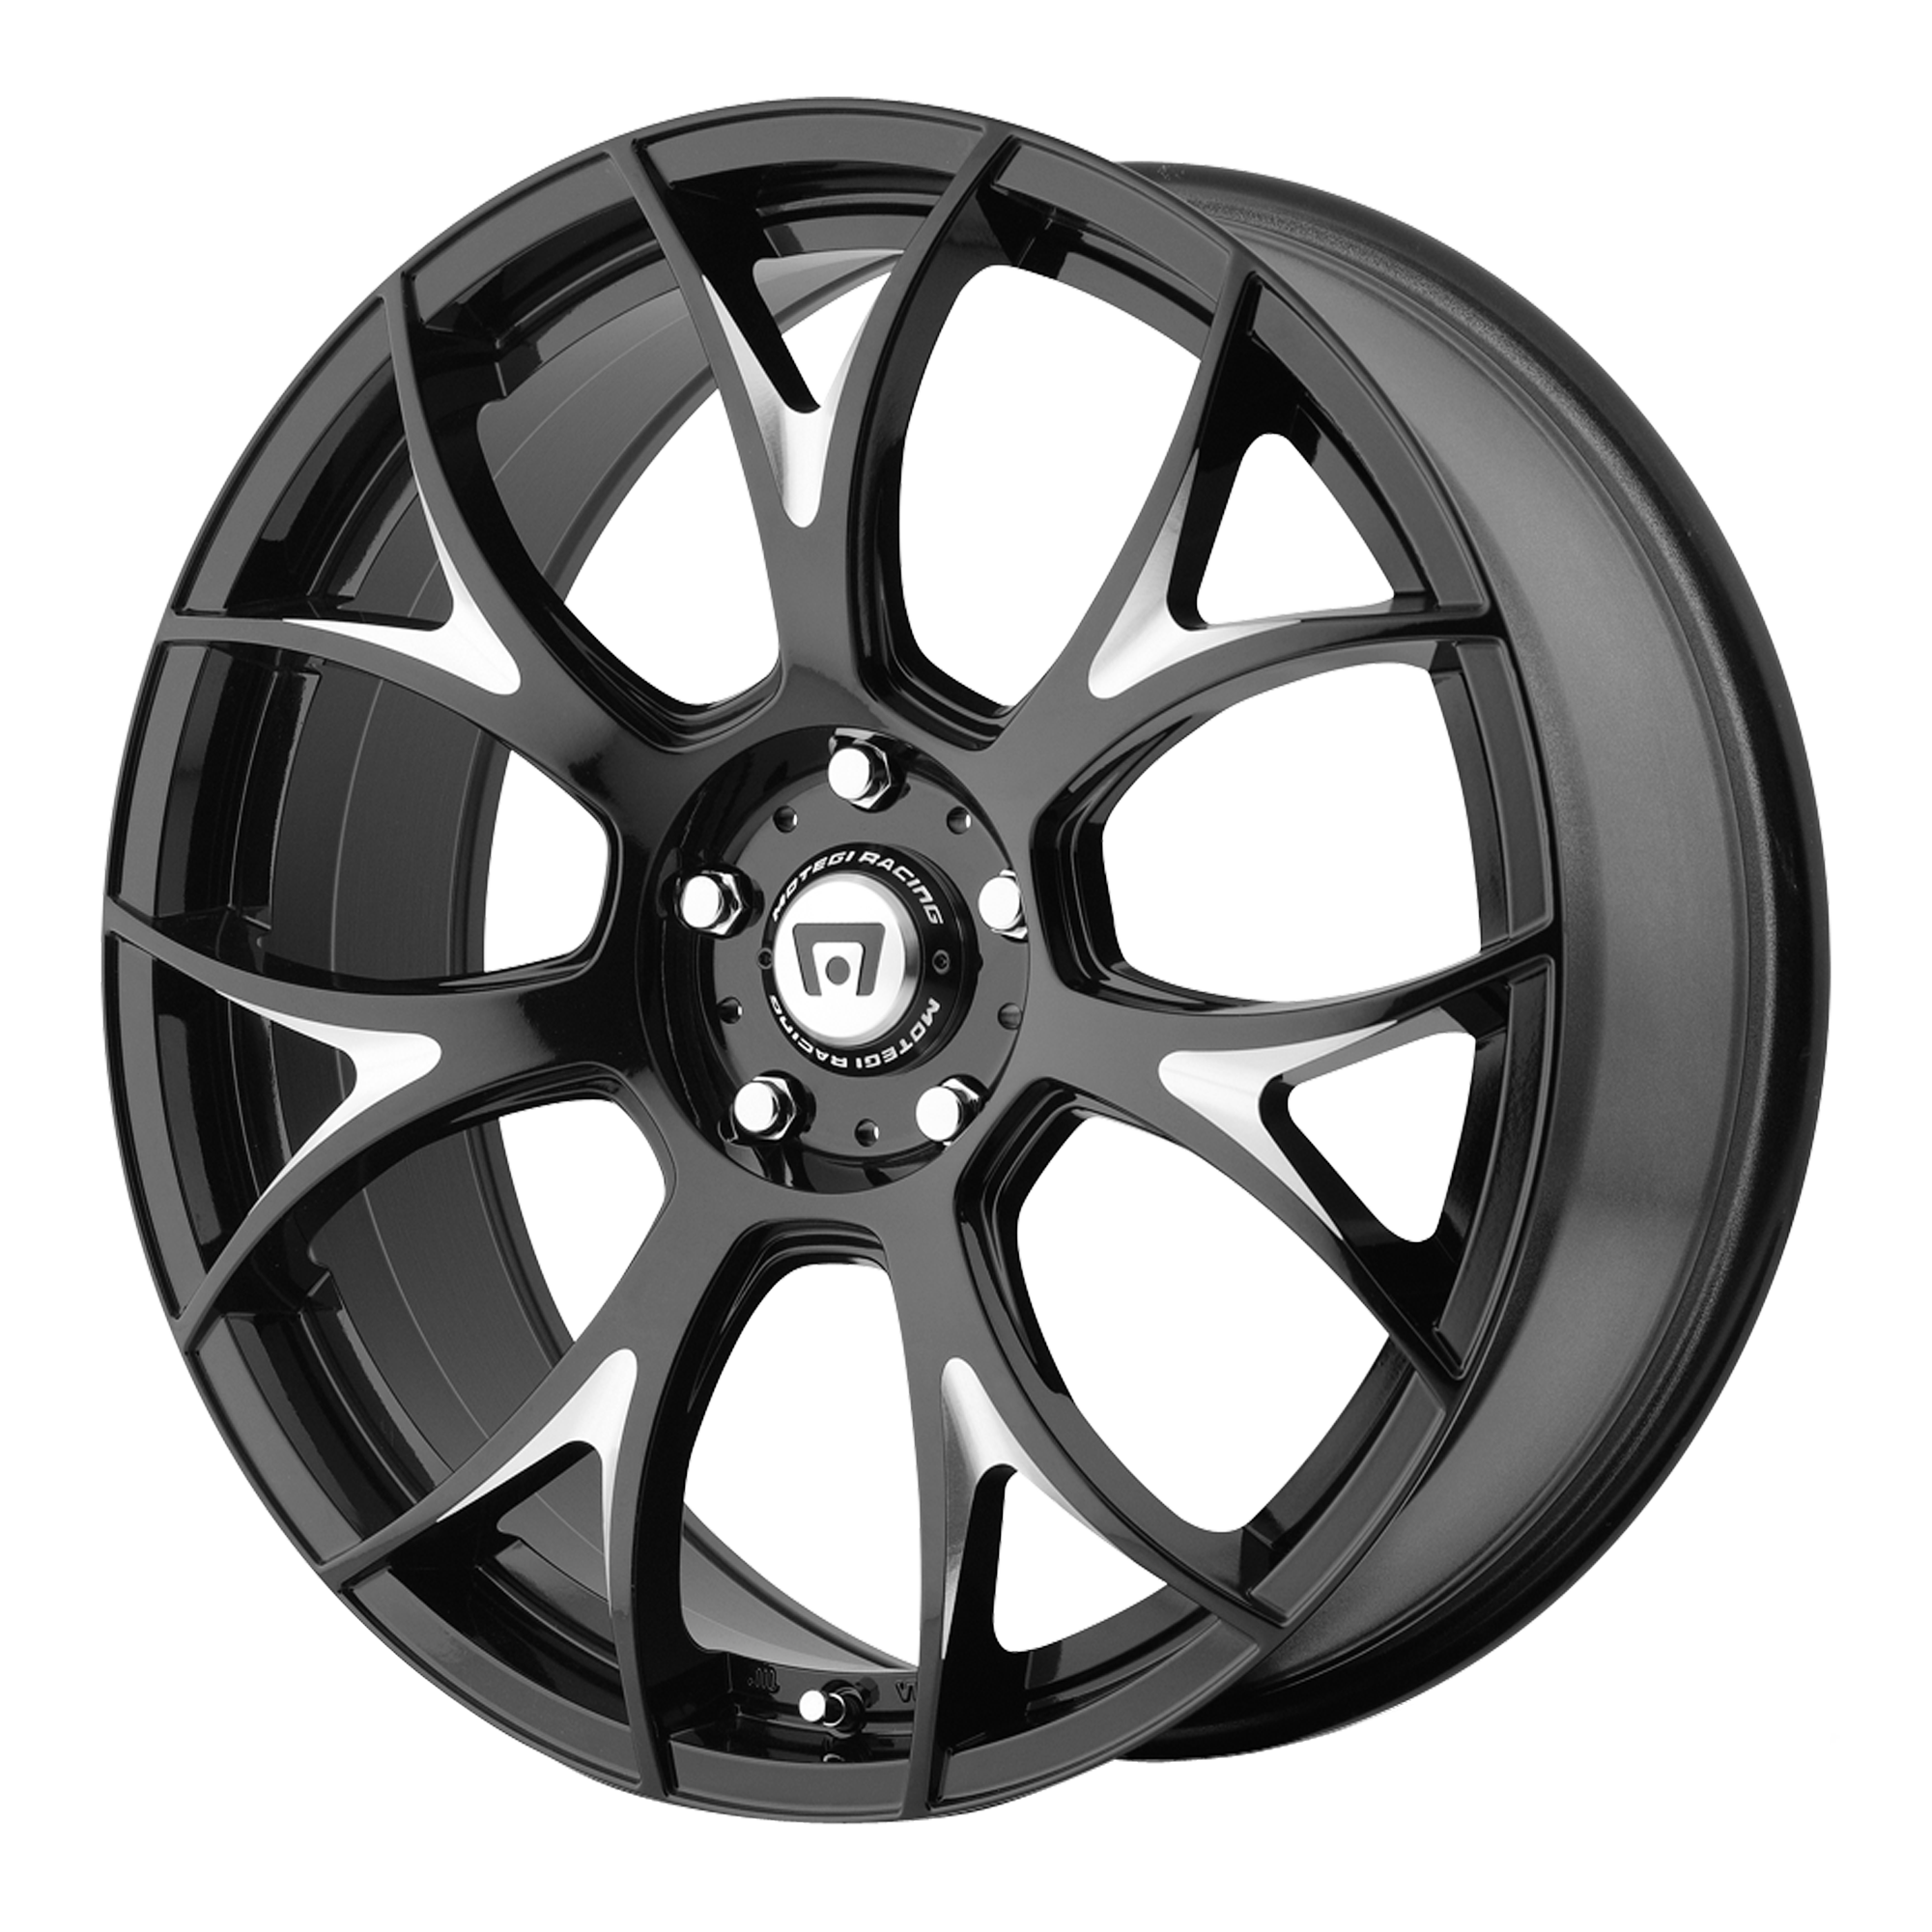 Motegi Racing Wheels MR126 Gloss Black w/ Milled Accents